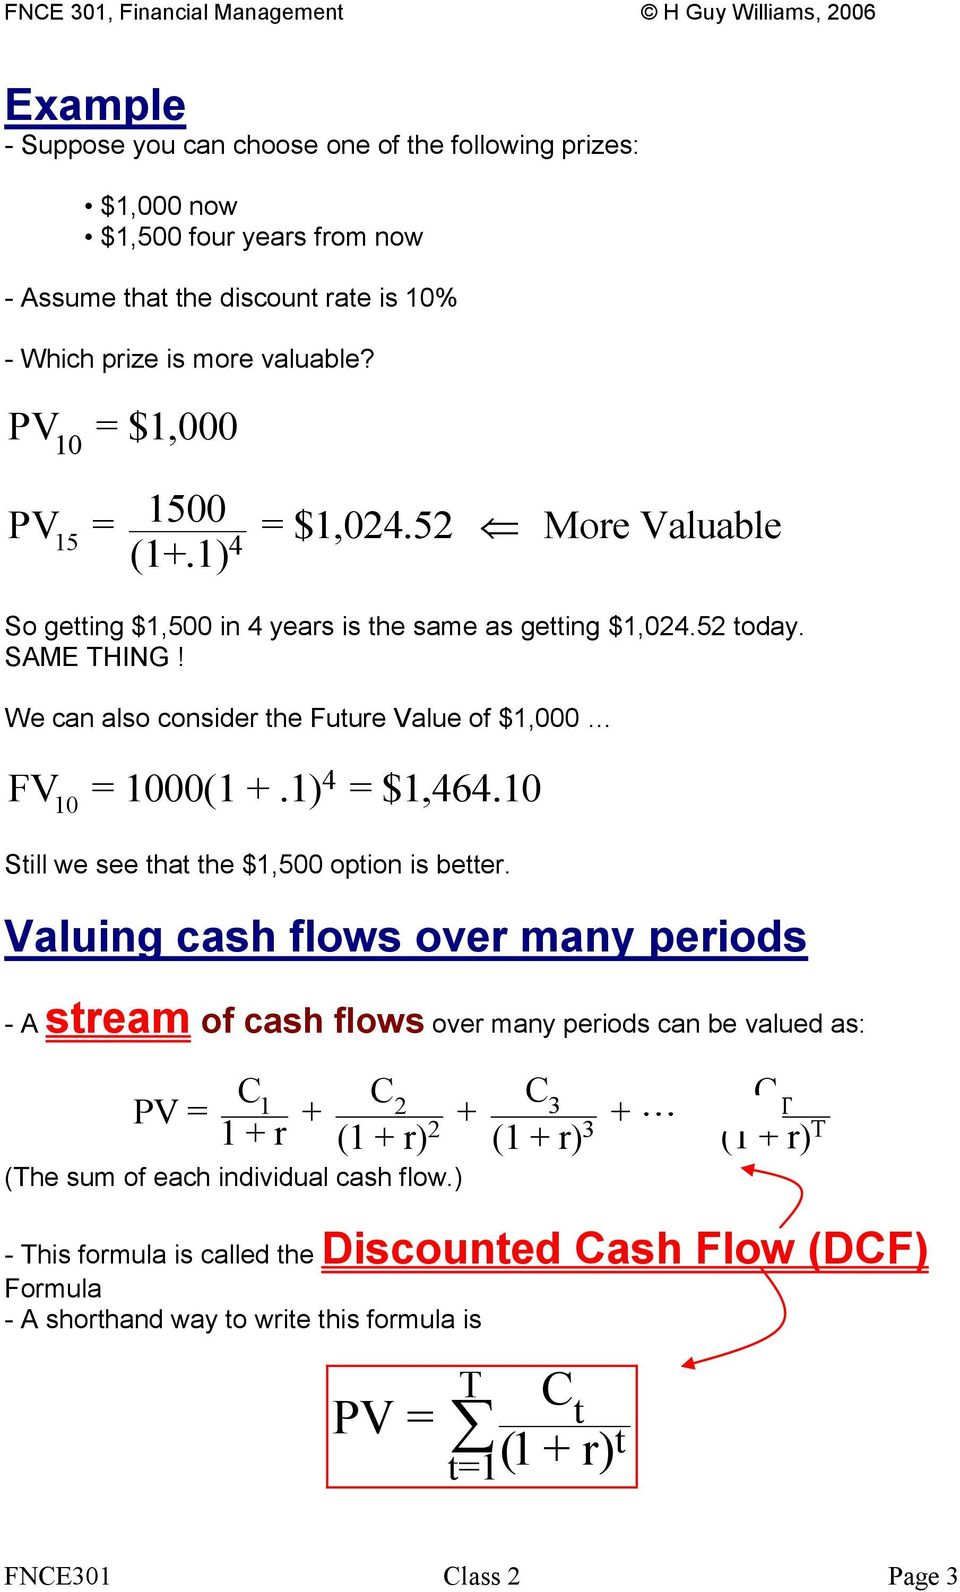 We can also consider the Future Value of $1,000 FV 4 10 = 1000(1 +.1) = $1,464.10 Still we see that the $1,500 option is better.